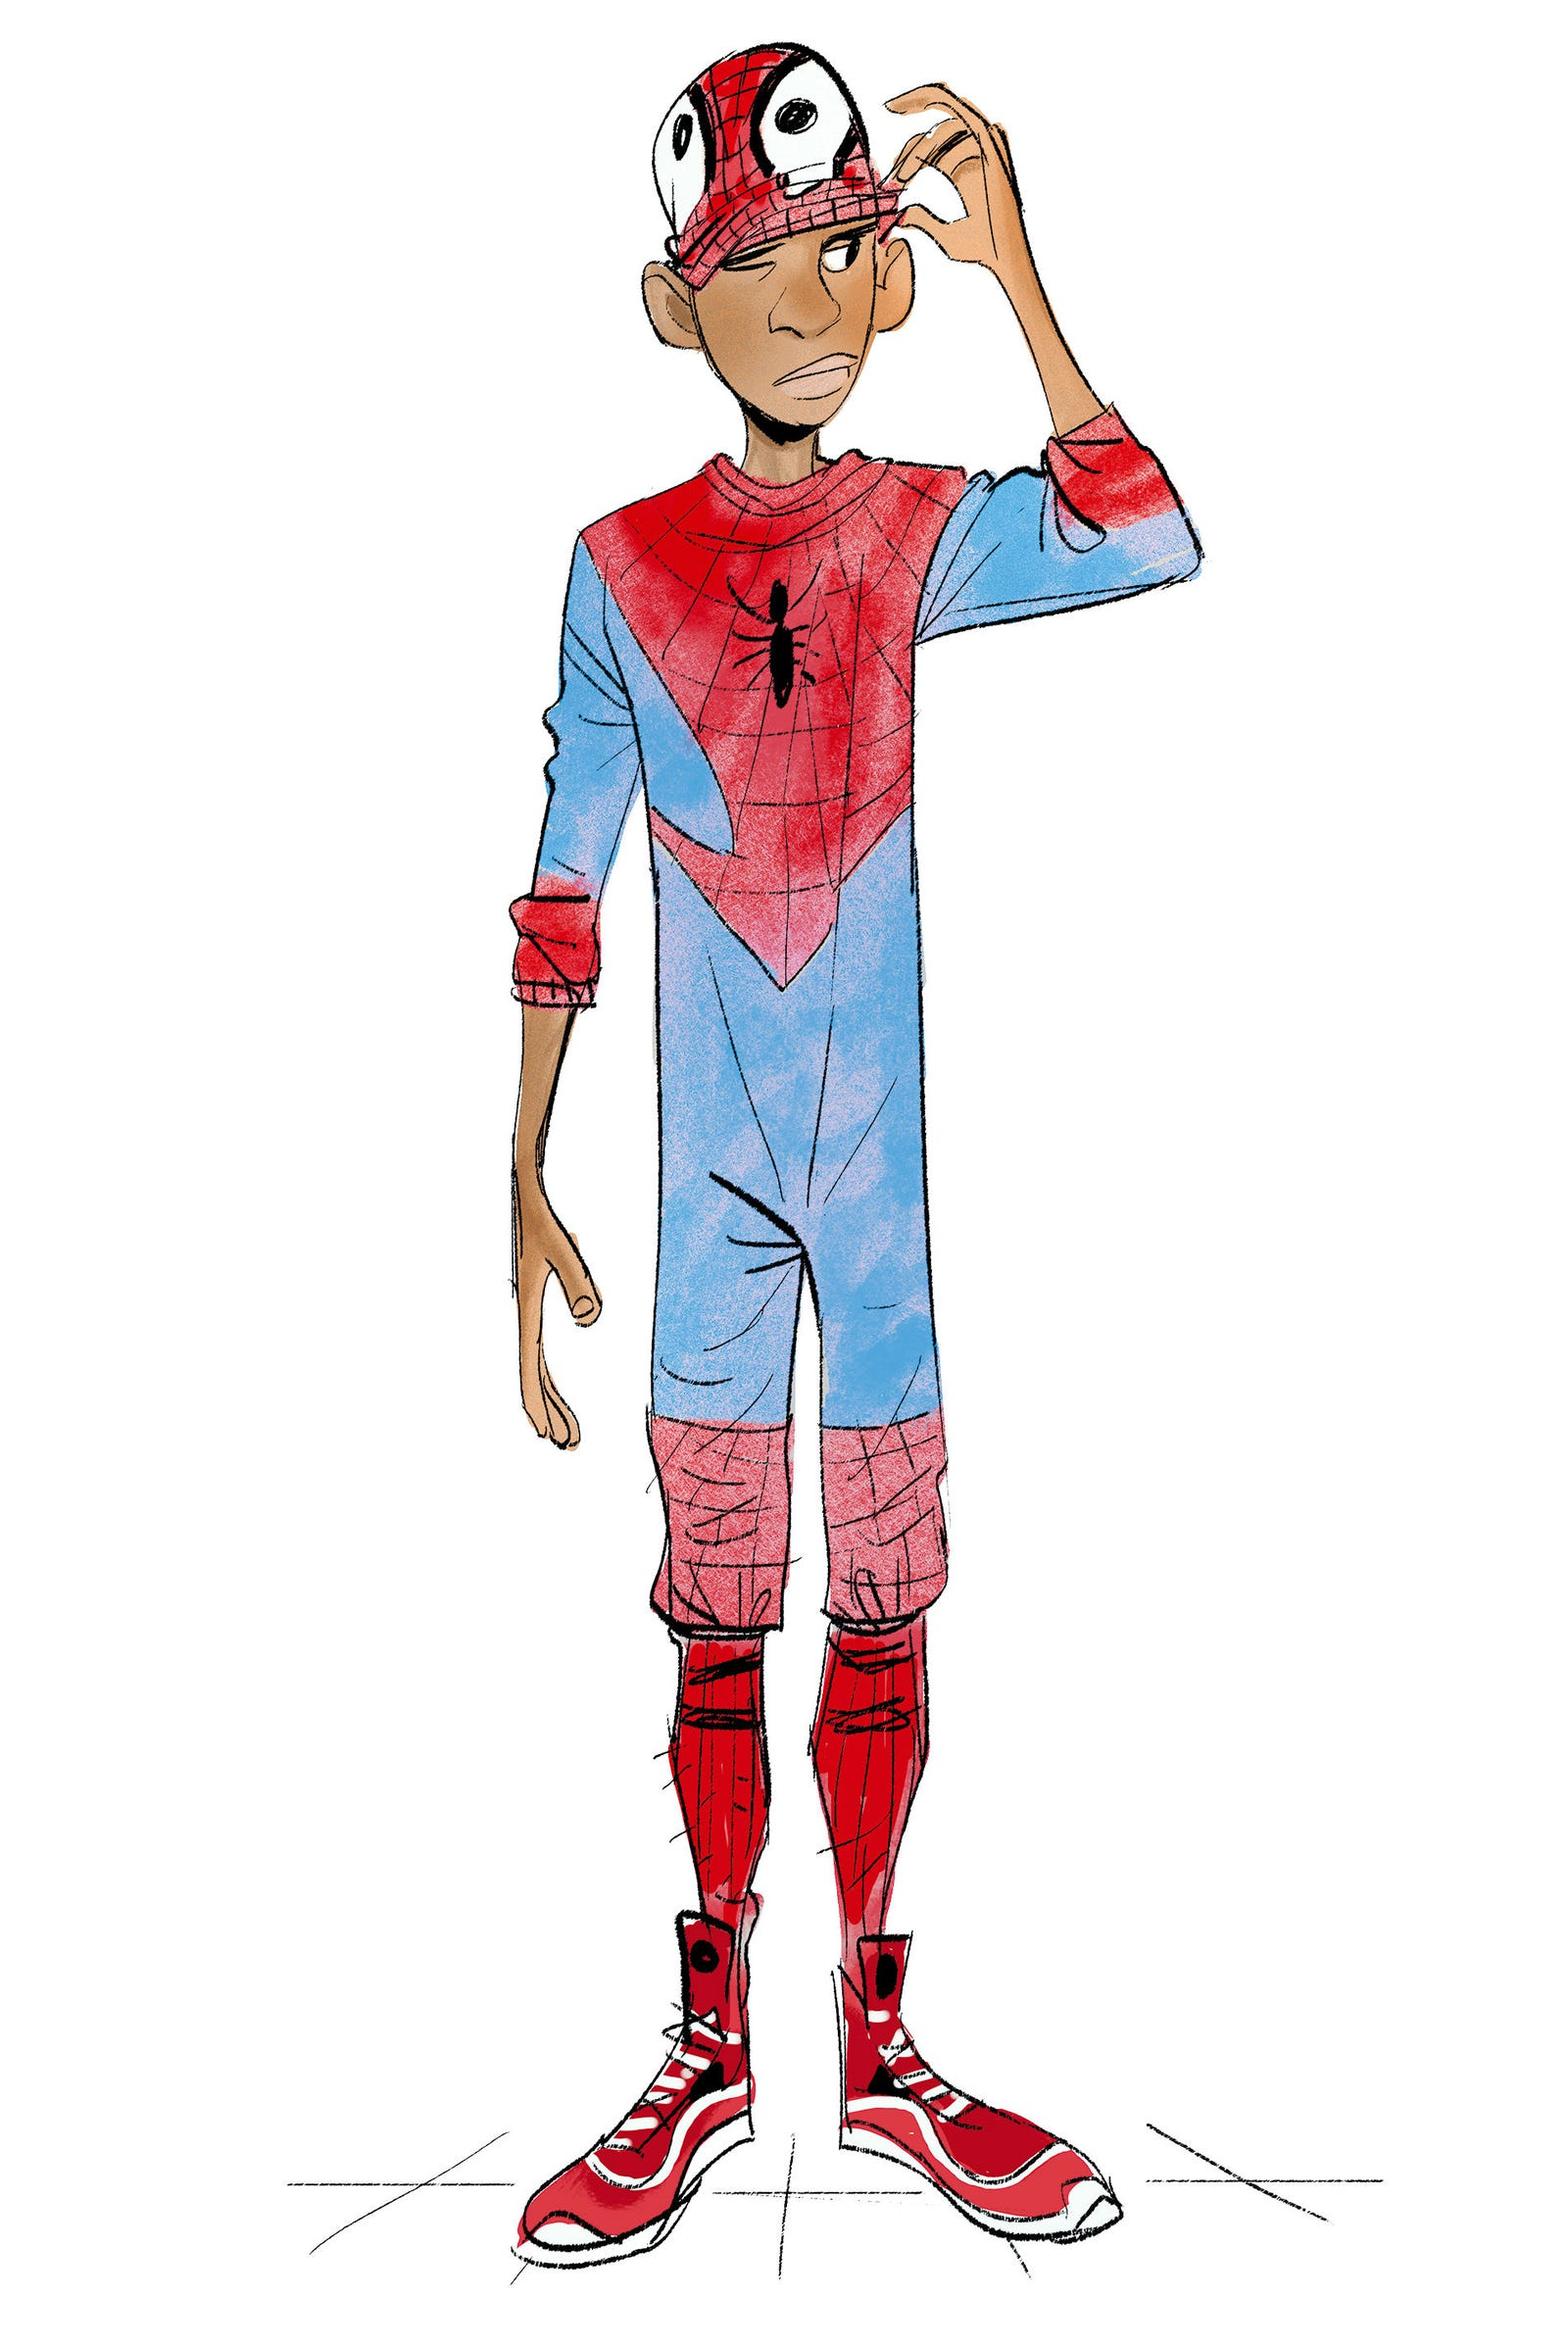 A selection of art from Spider-Man: Into the Spider-Verse - The Art of the Movie by Ramin Zahed, published by Titan Books.